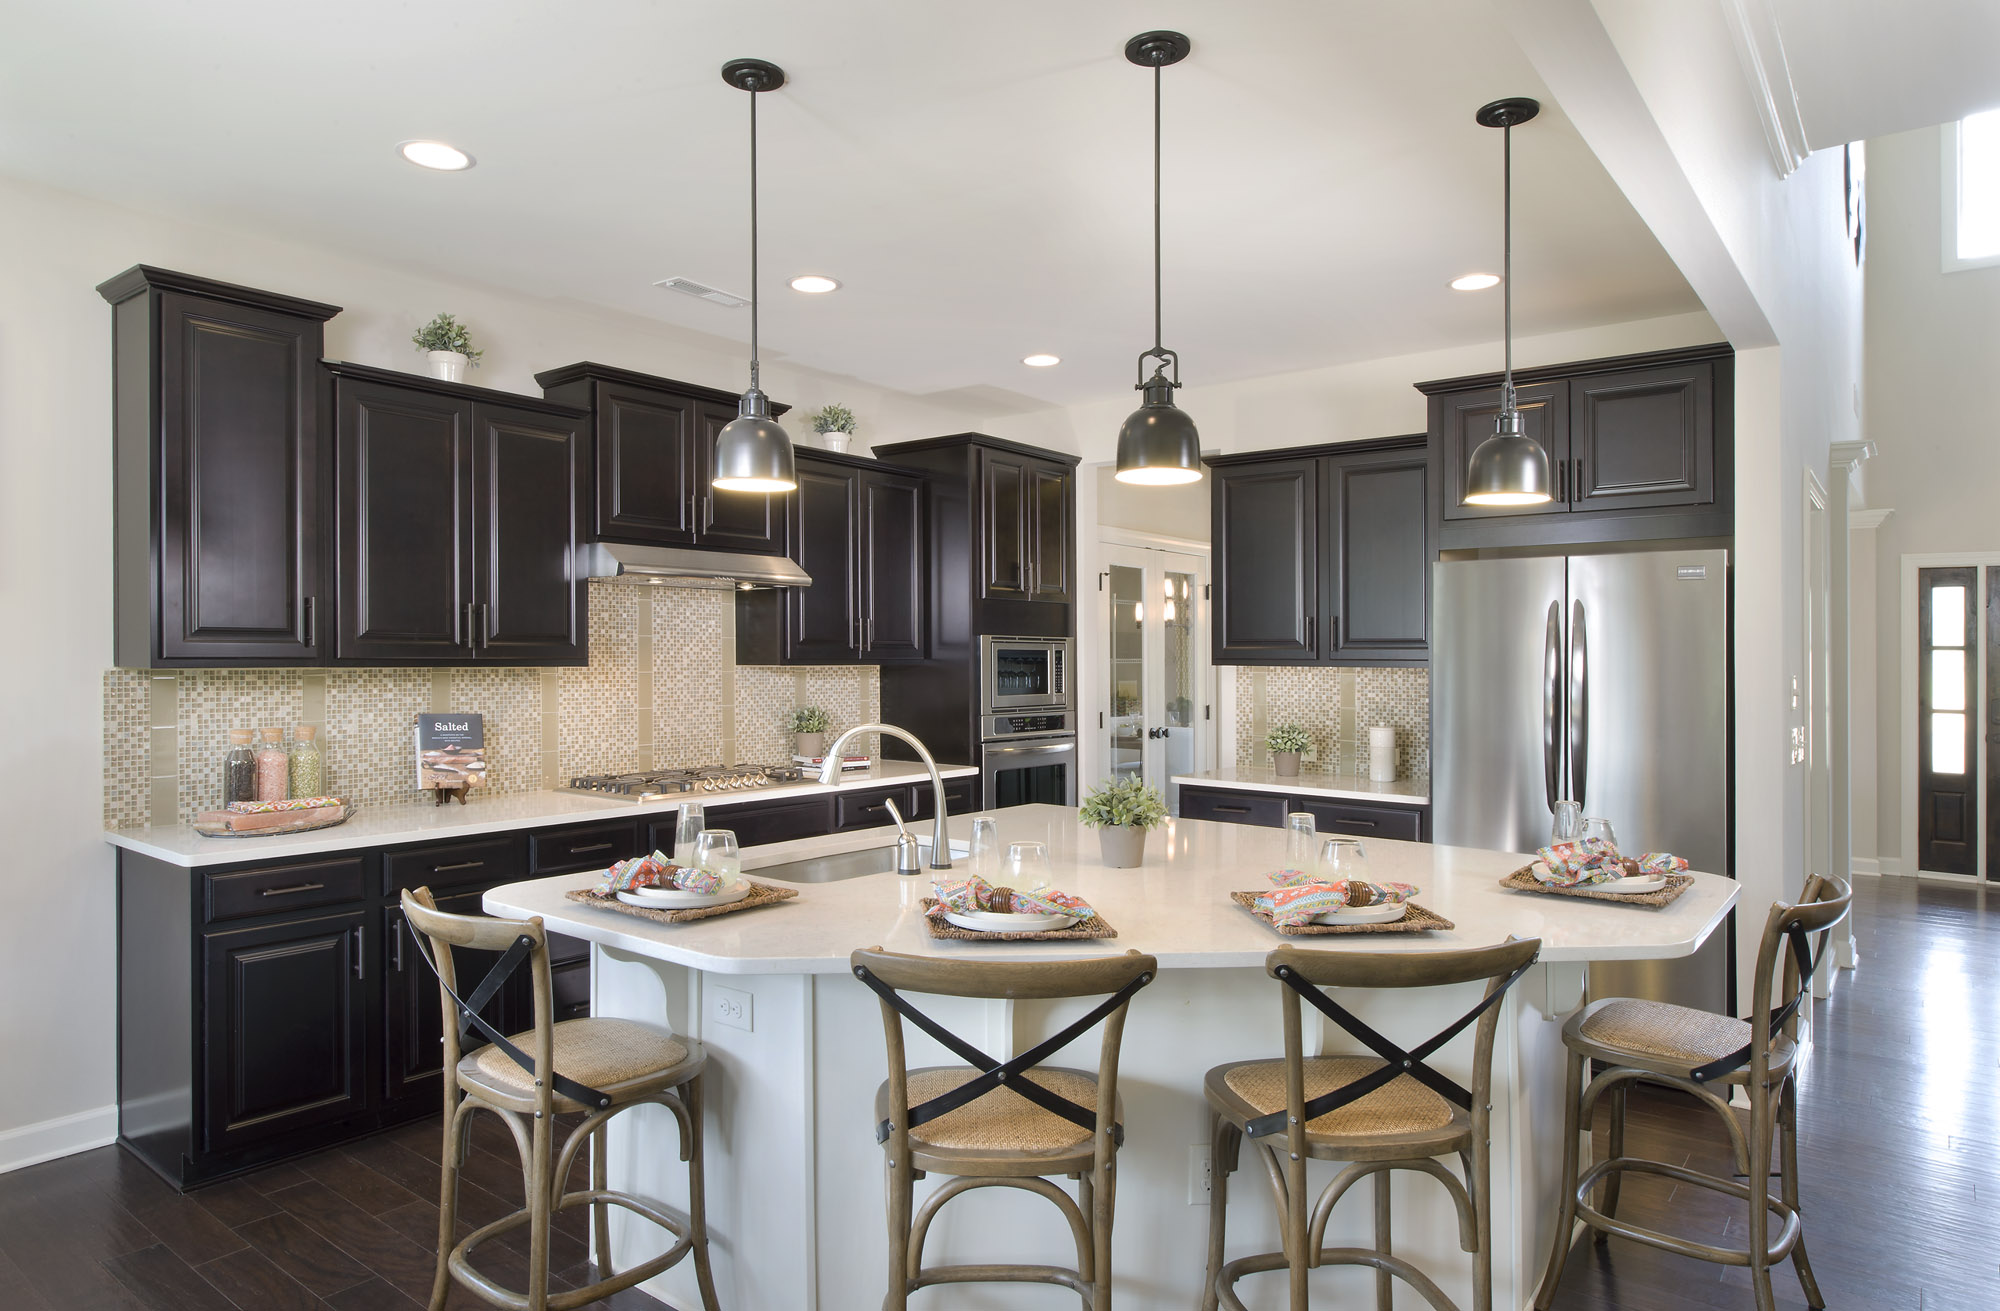 design studio shea homes design studio home design ideas shea shea homes opens new village in greensboro nc neighborhood shea homes design studio